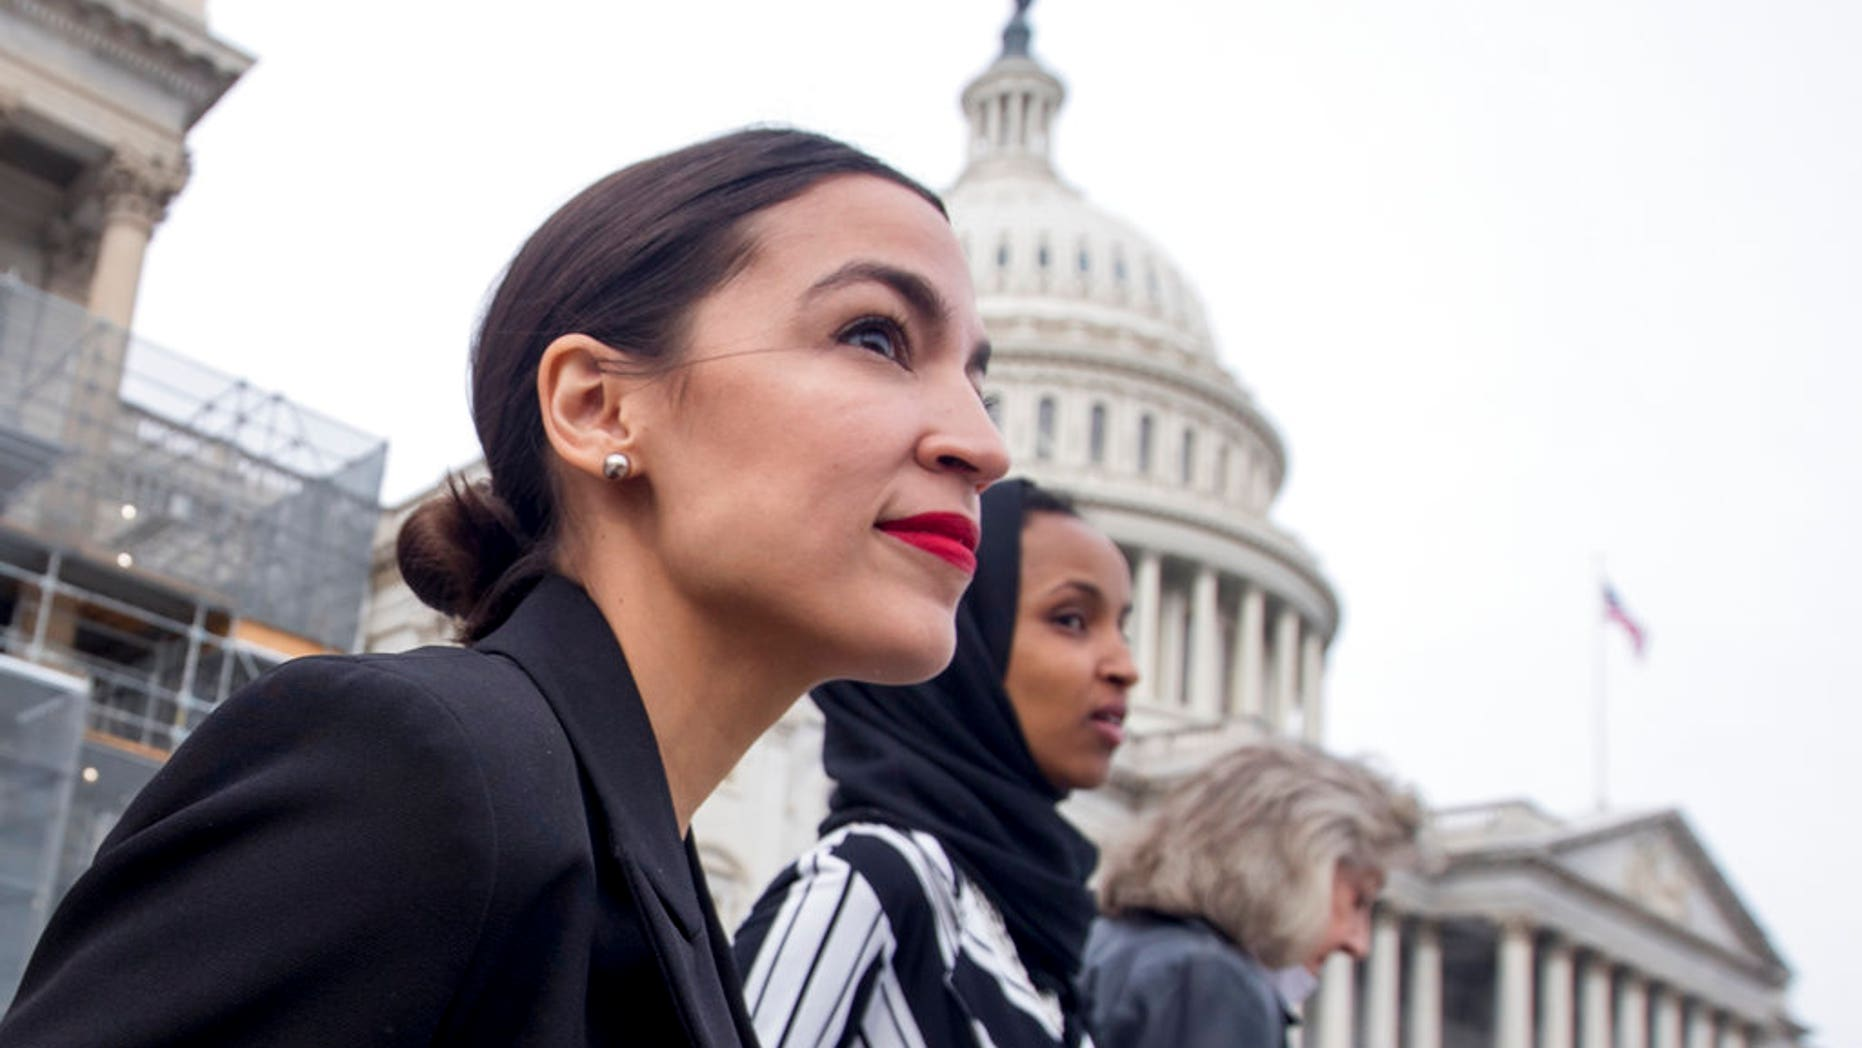 Alexandria Ocasio-Cortez Hires Marijuana Policy Expert as an Advisor